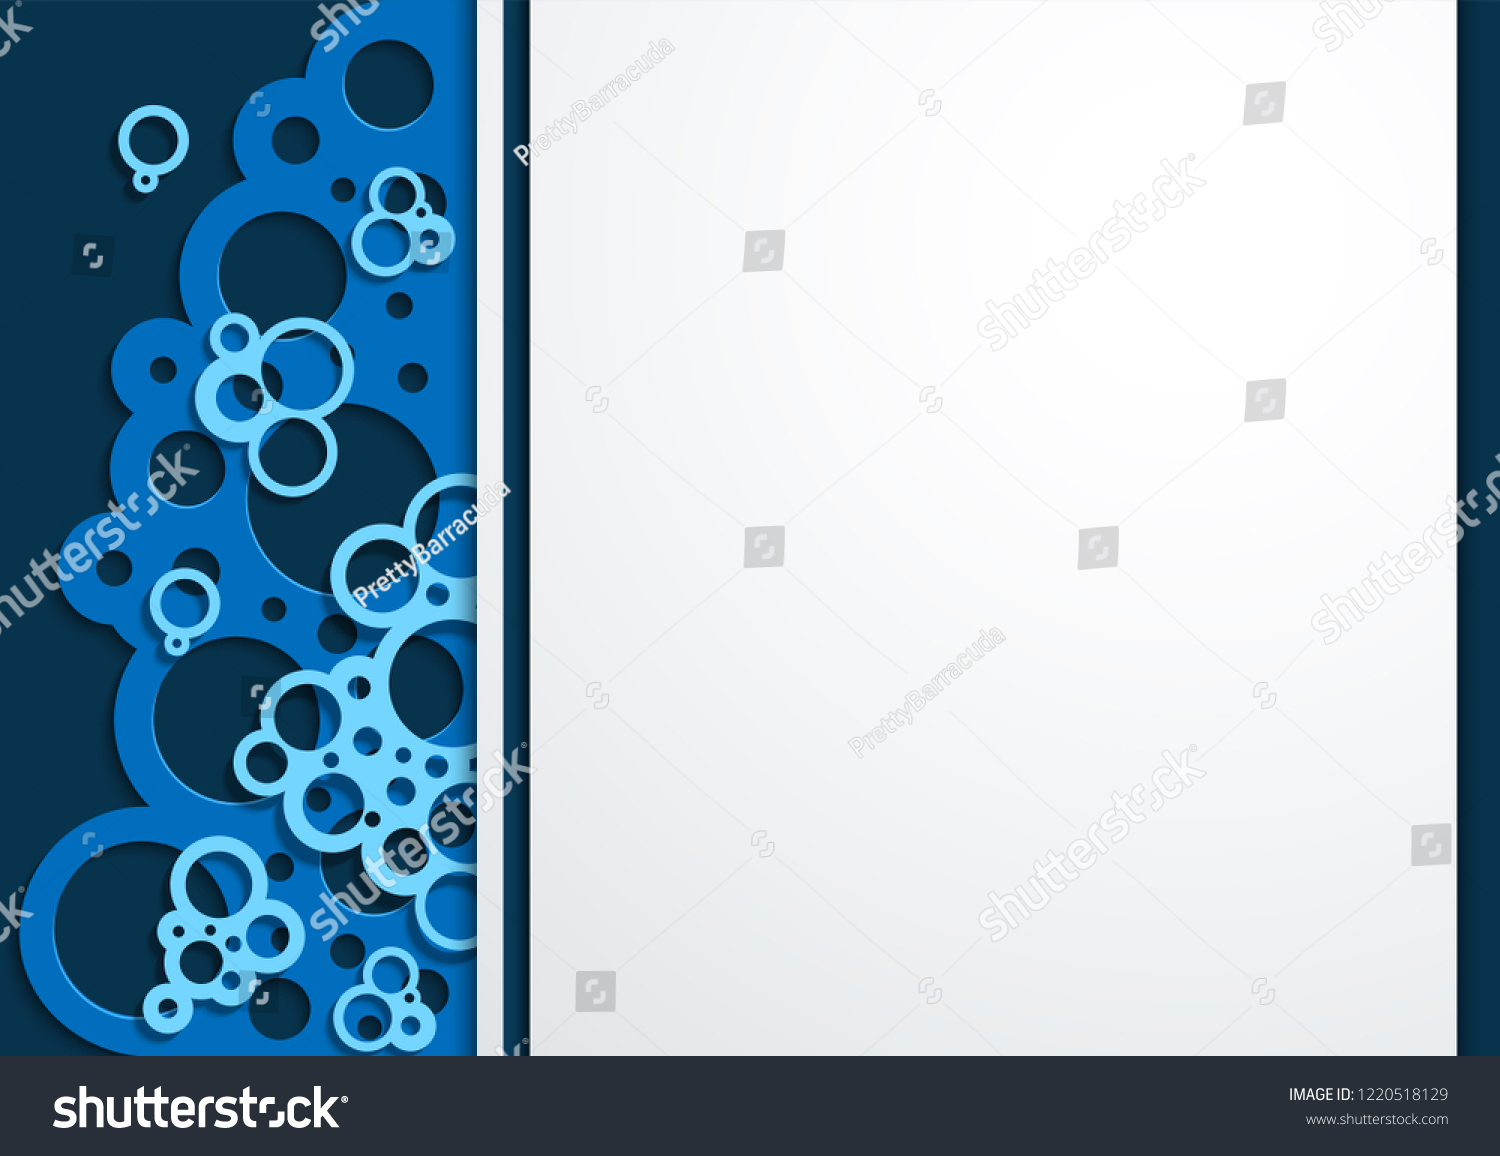 Wallpaper 3d Paper Art With Simple Shapes Template For